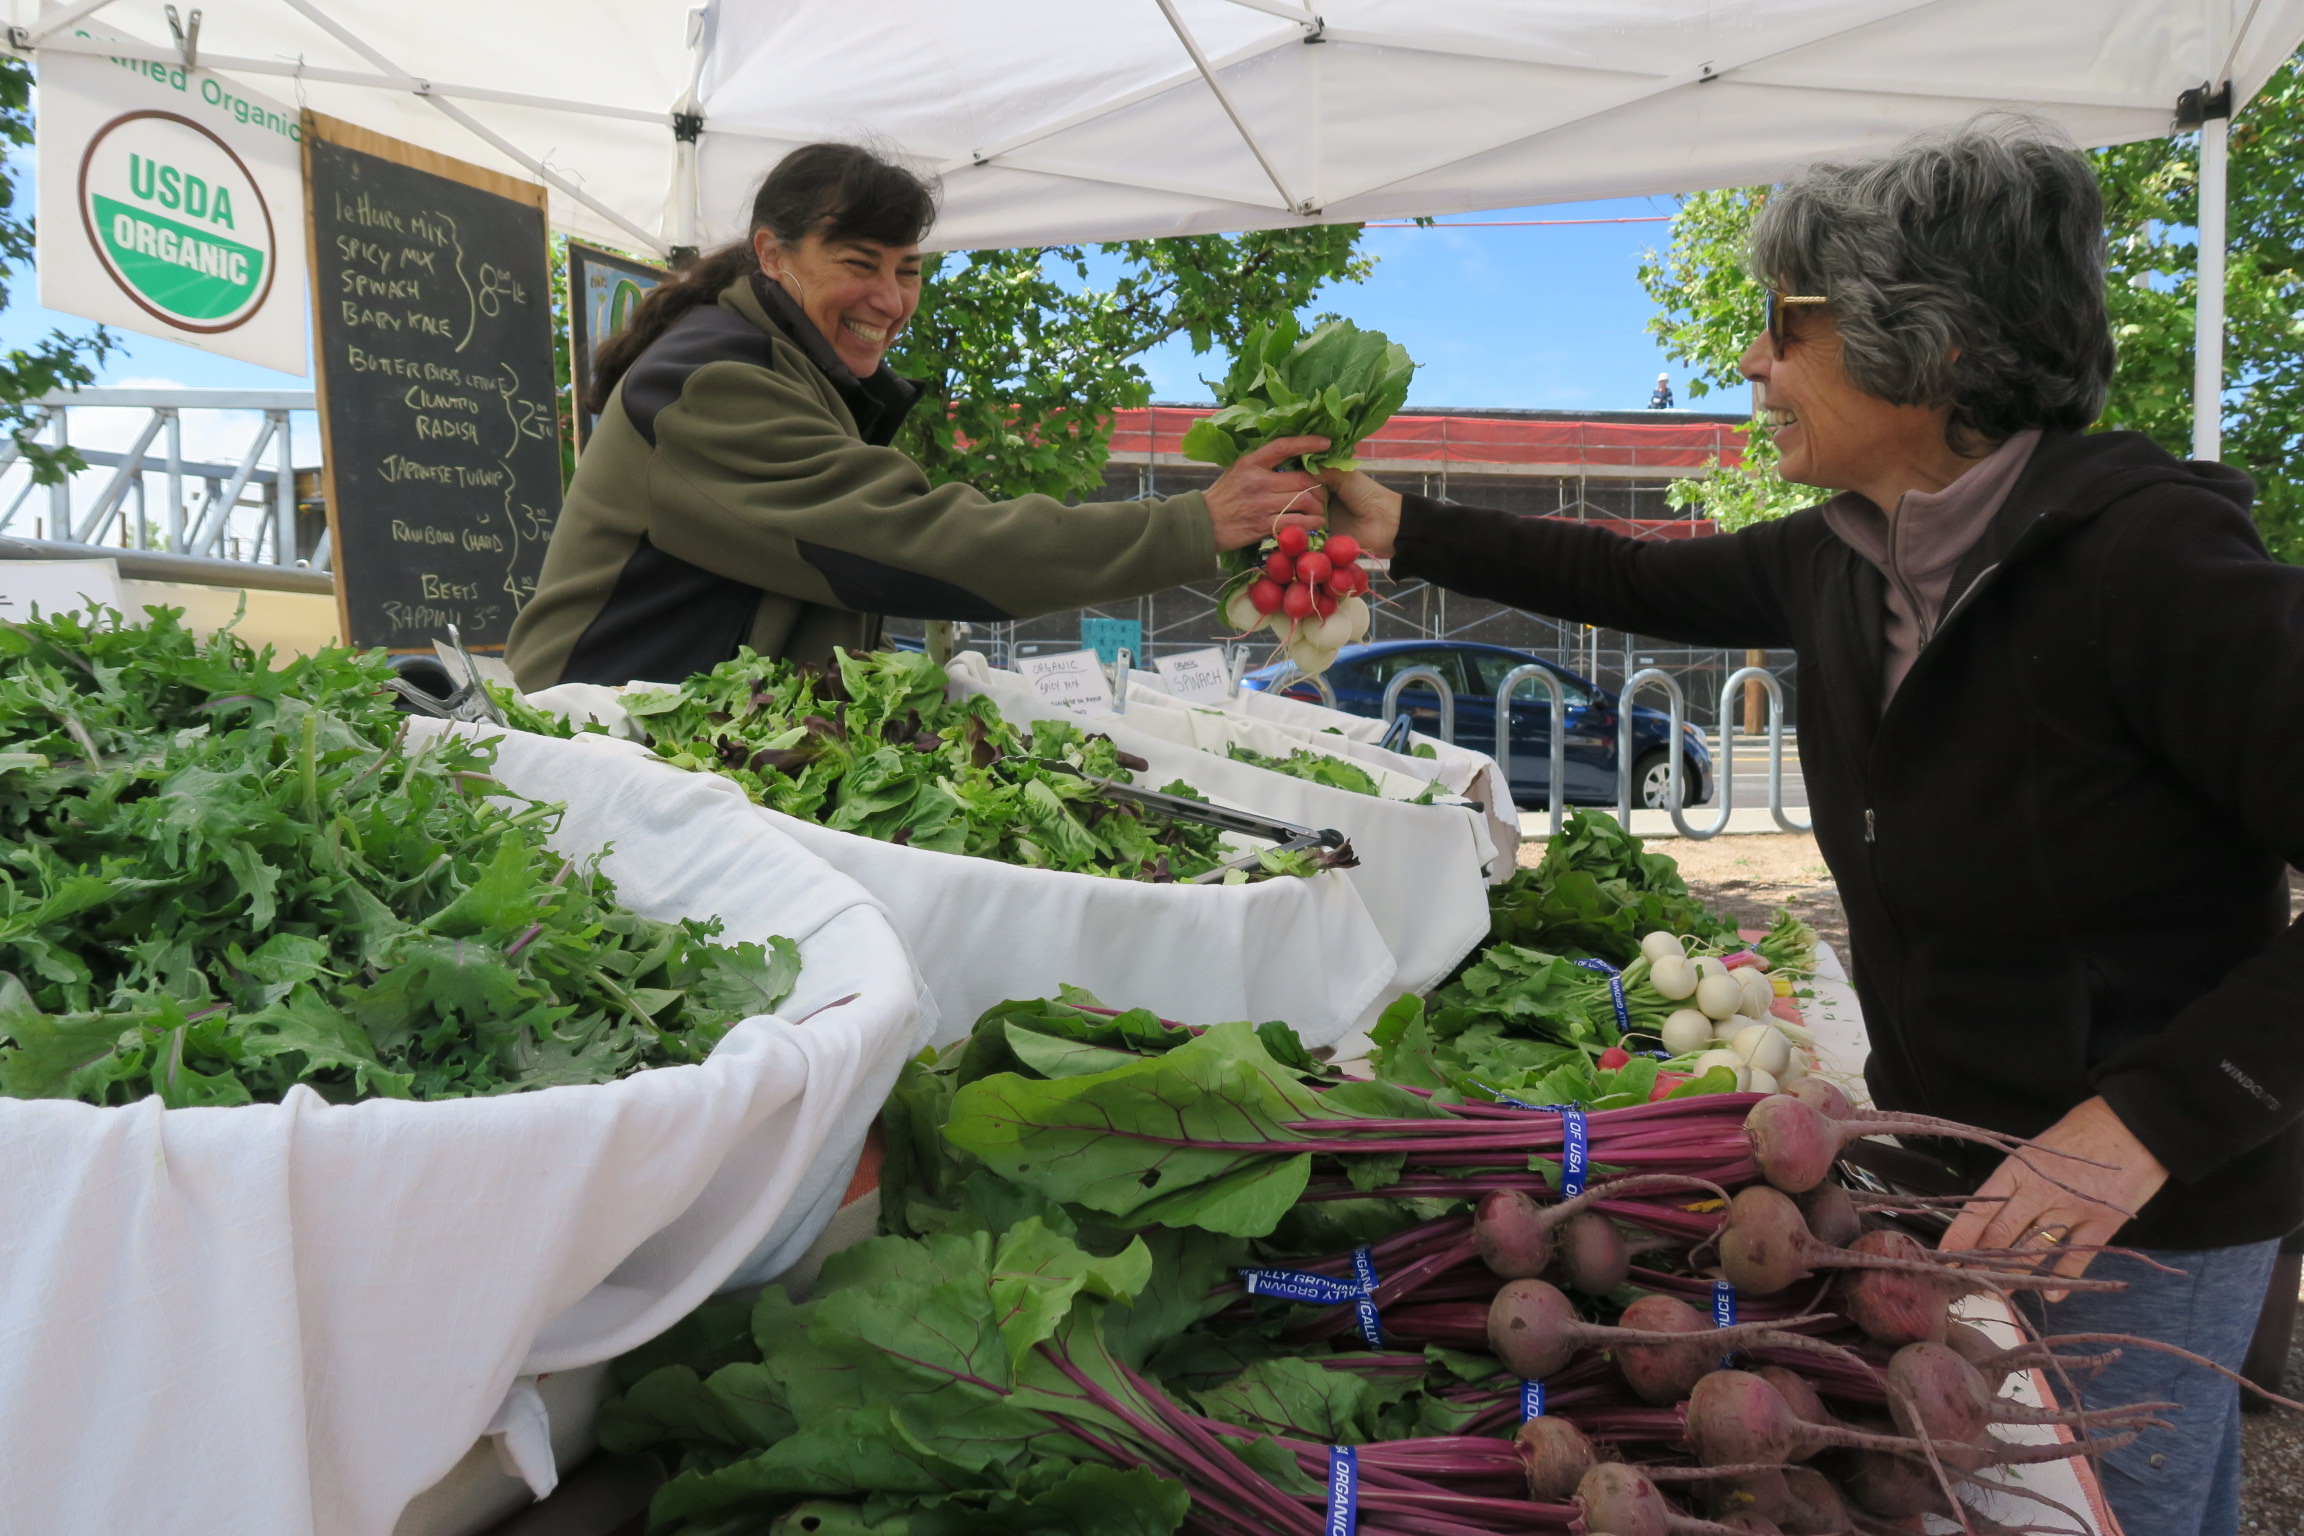 Greens Hot at Growers' Markets